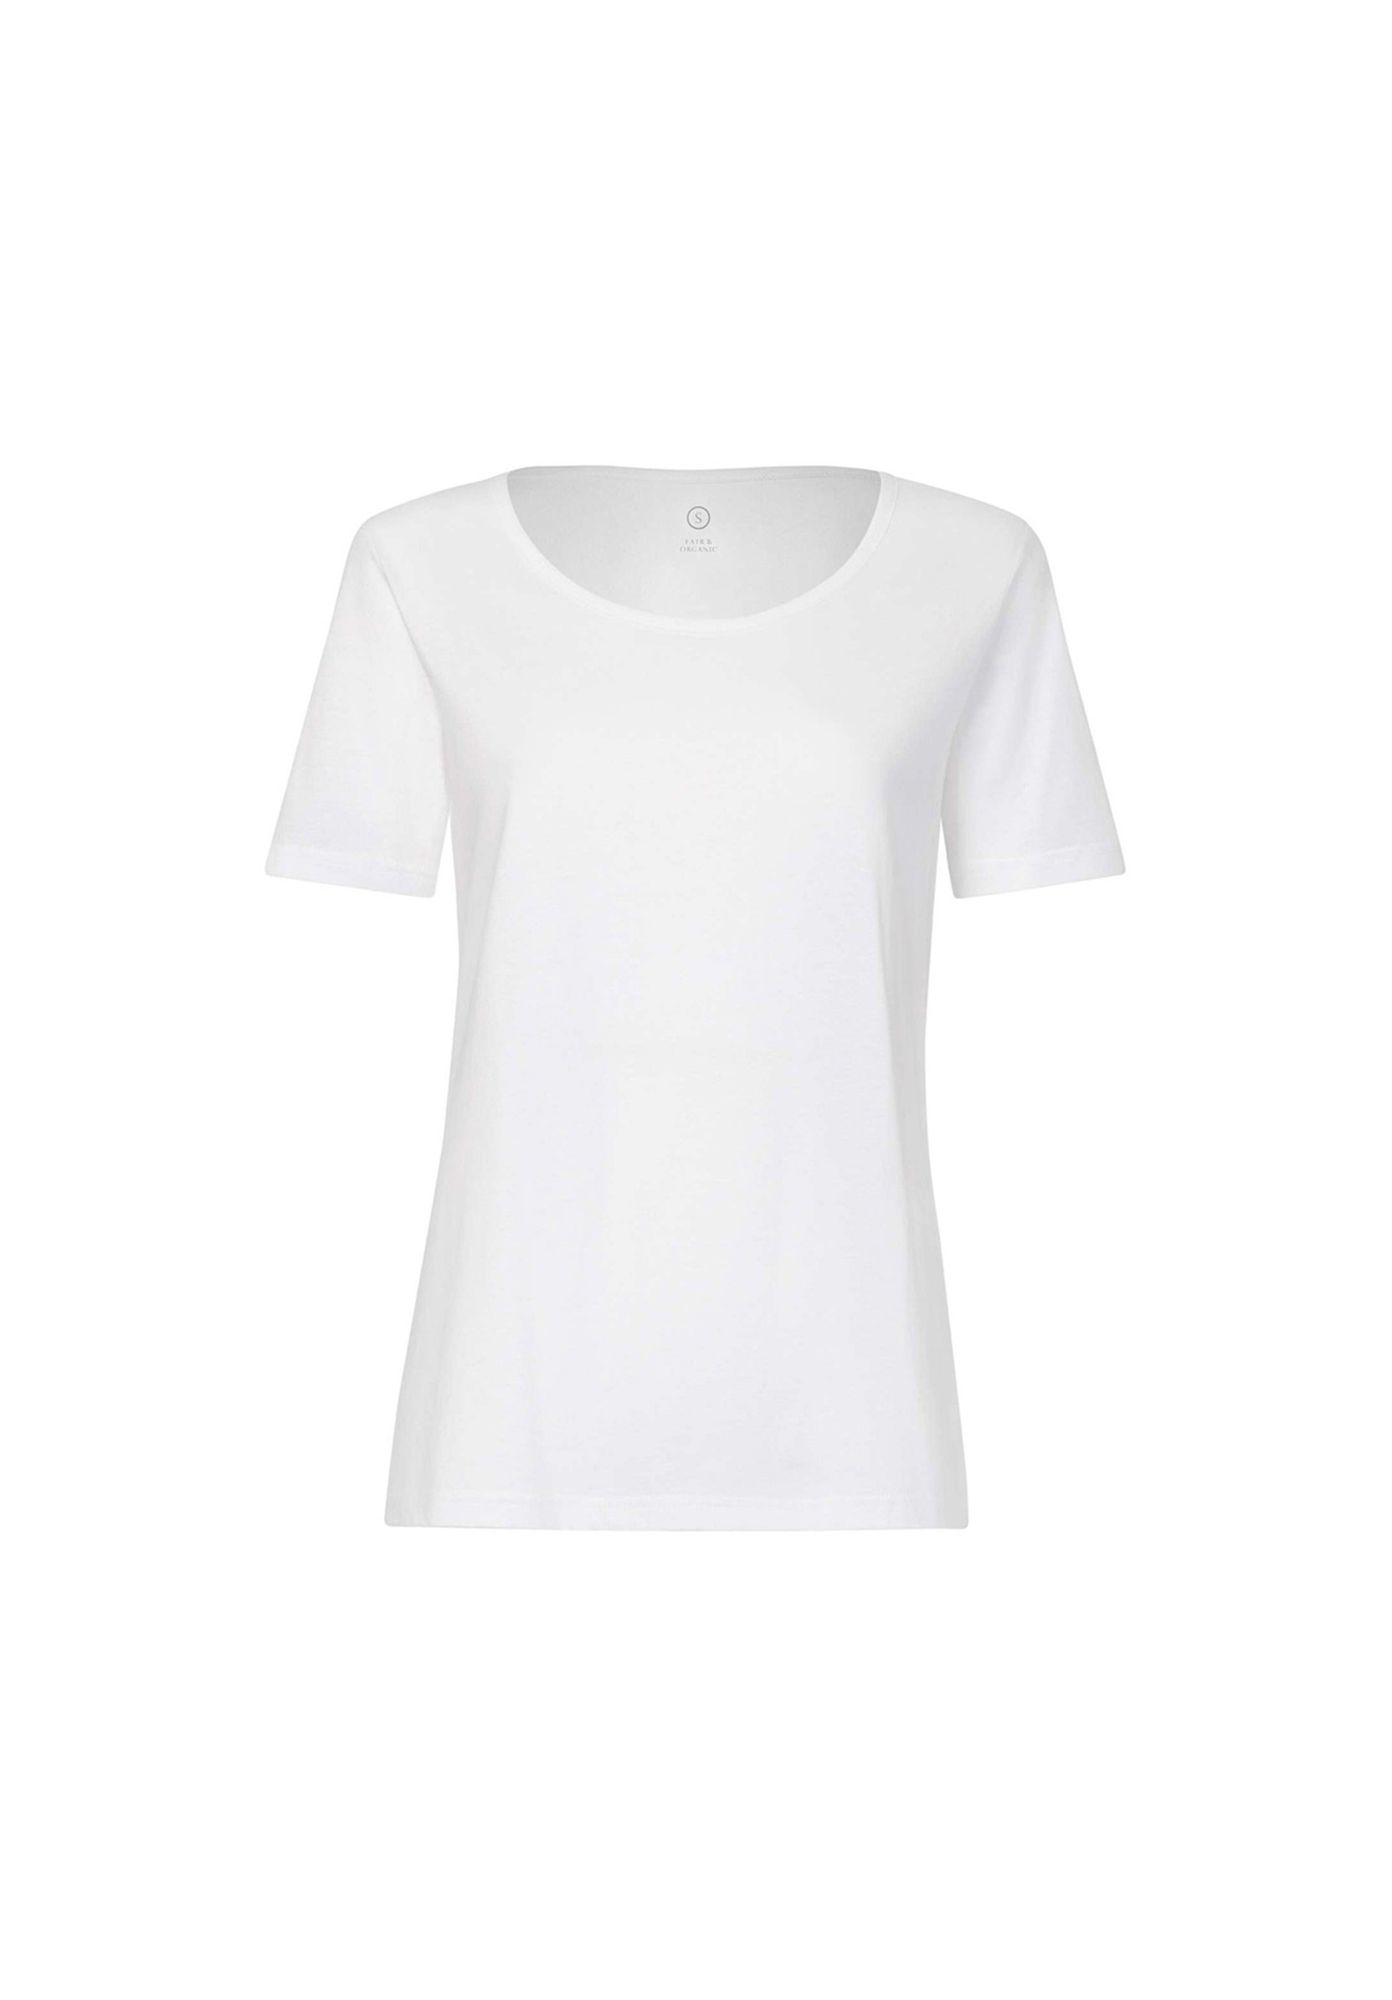 BTD64 T-Shirt White